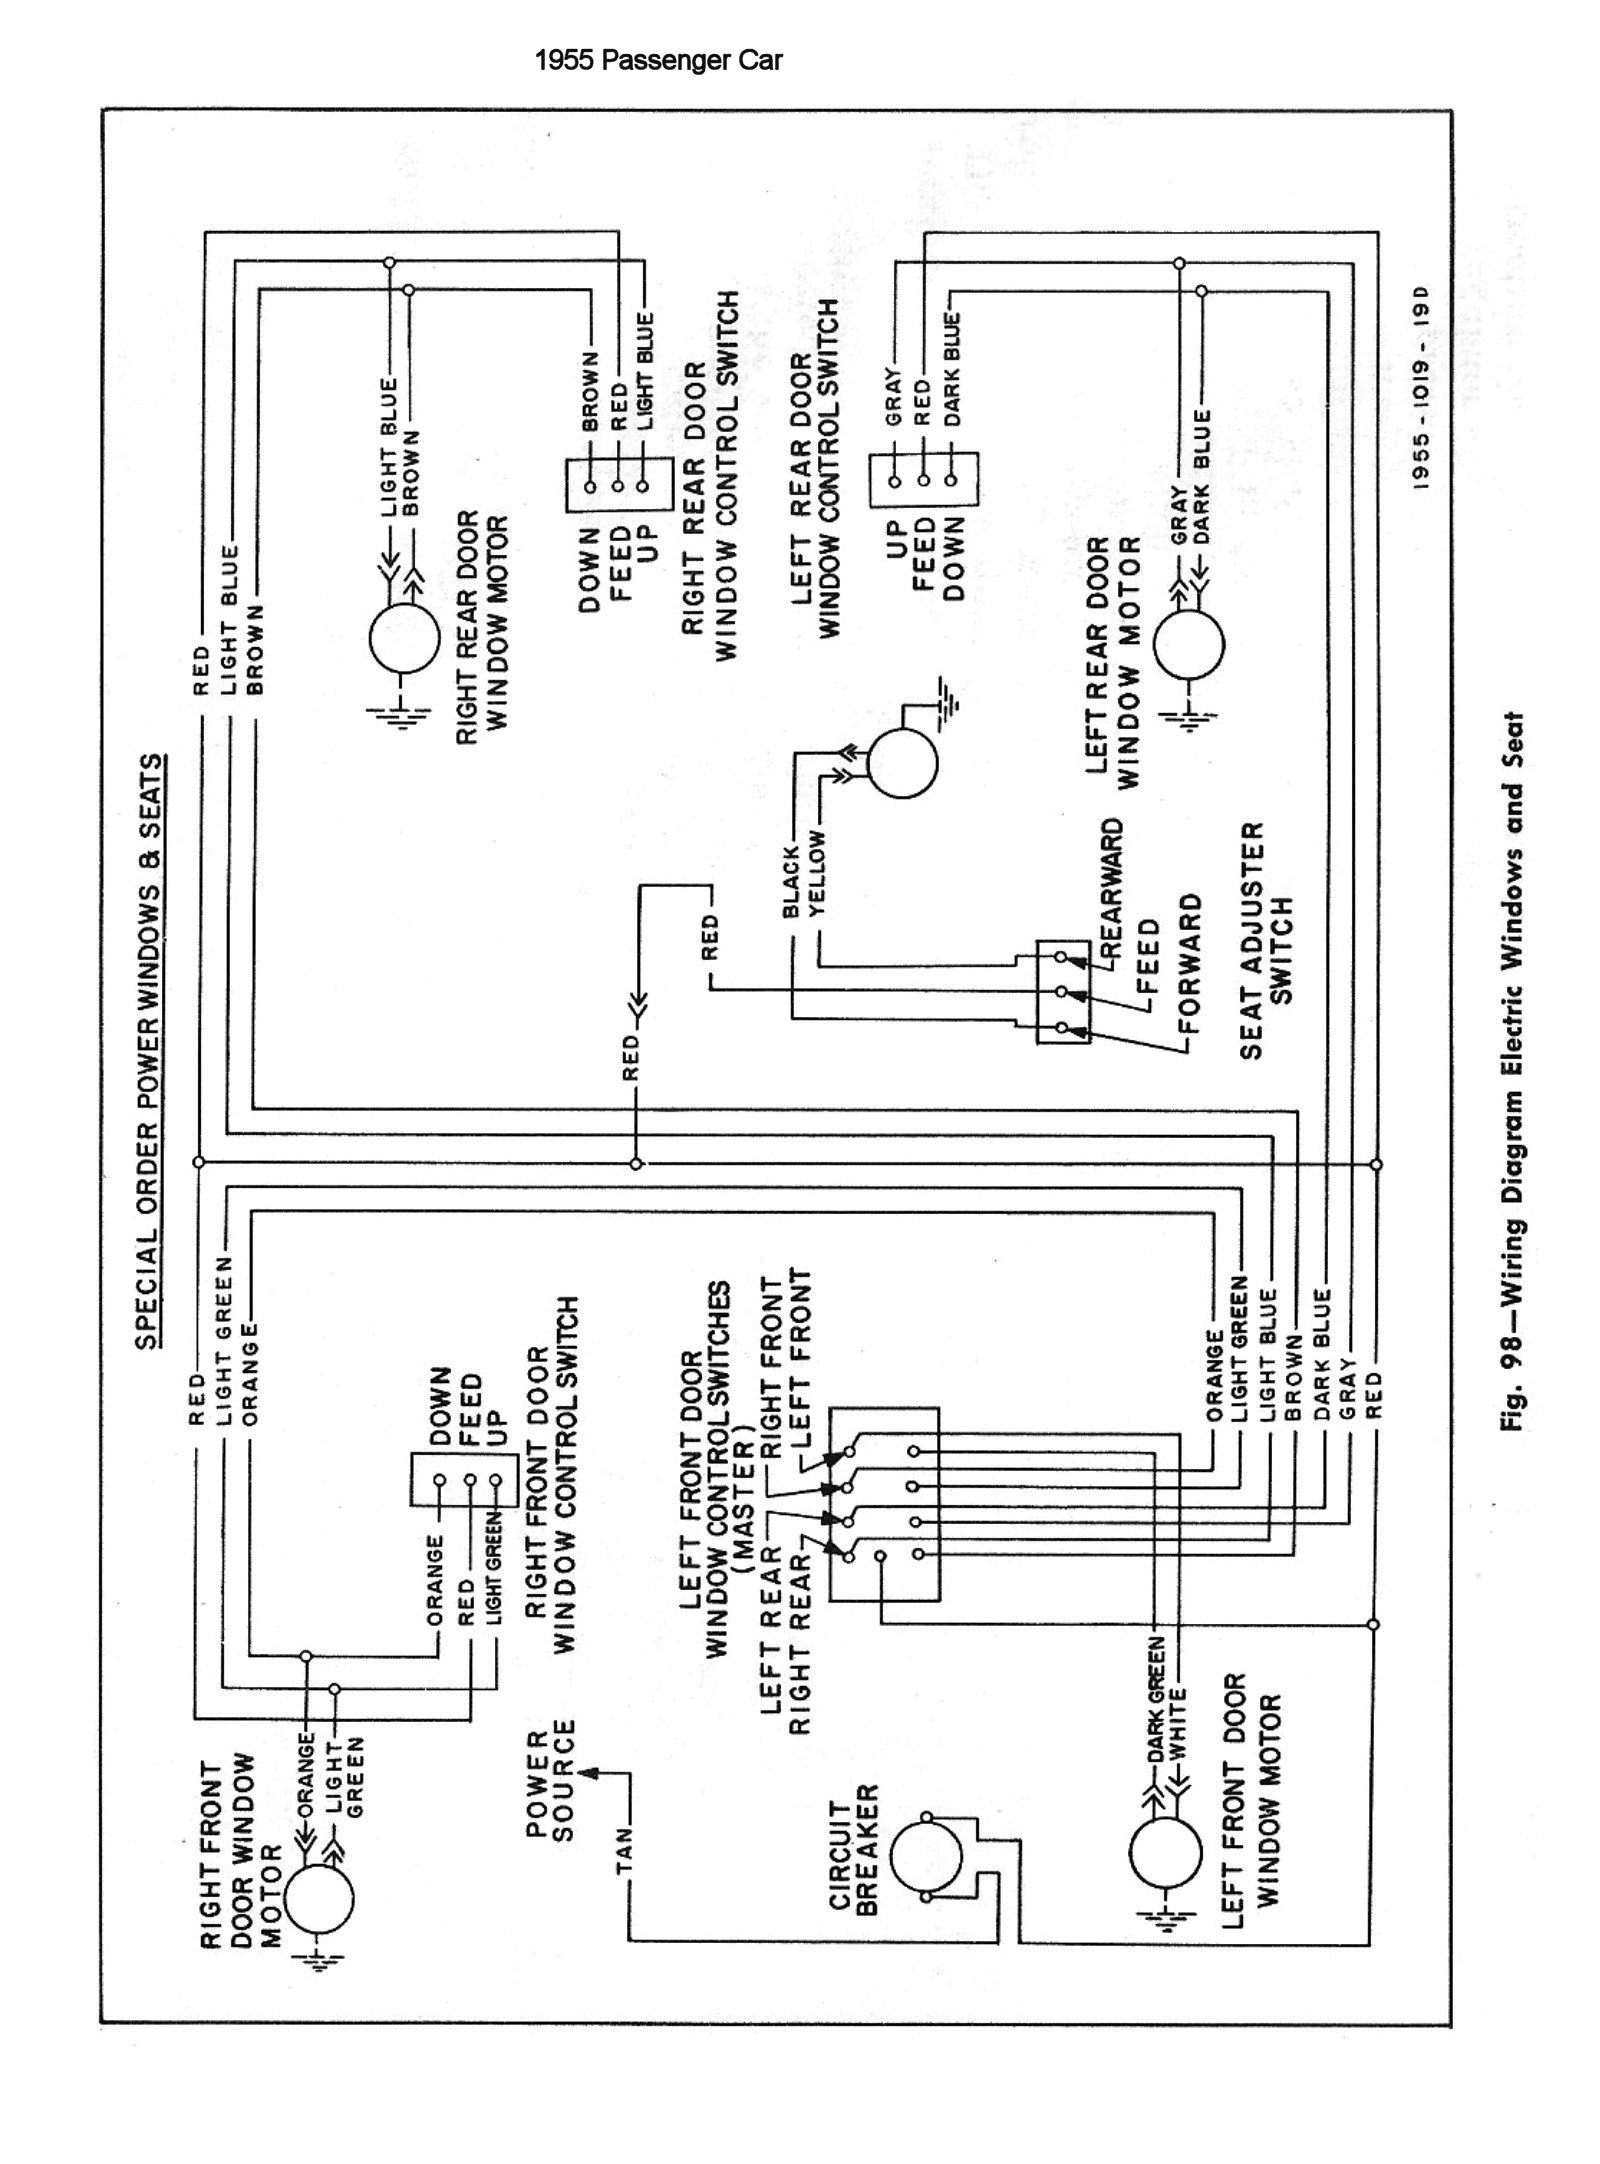 Wiring Diagram For Chevy Truck